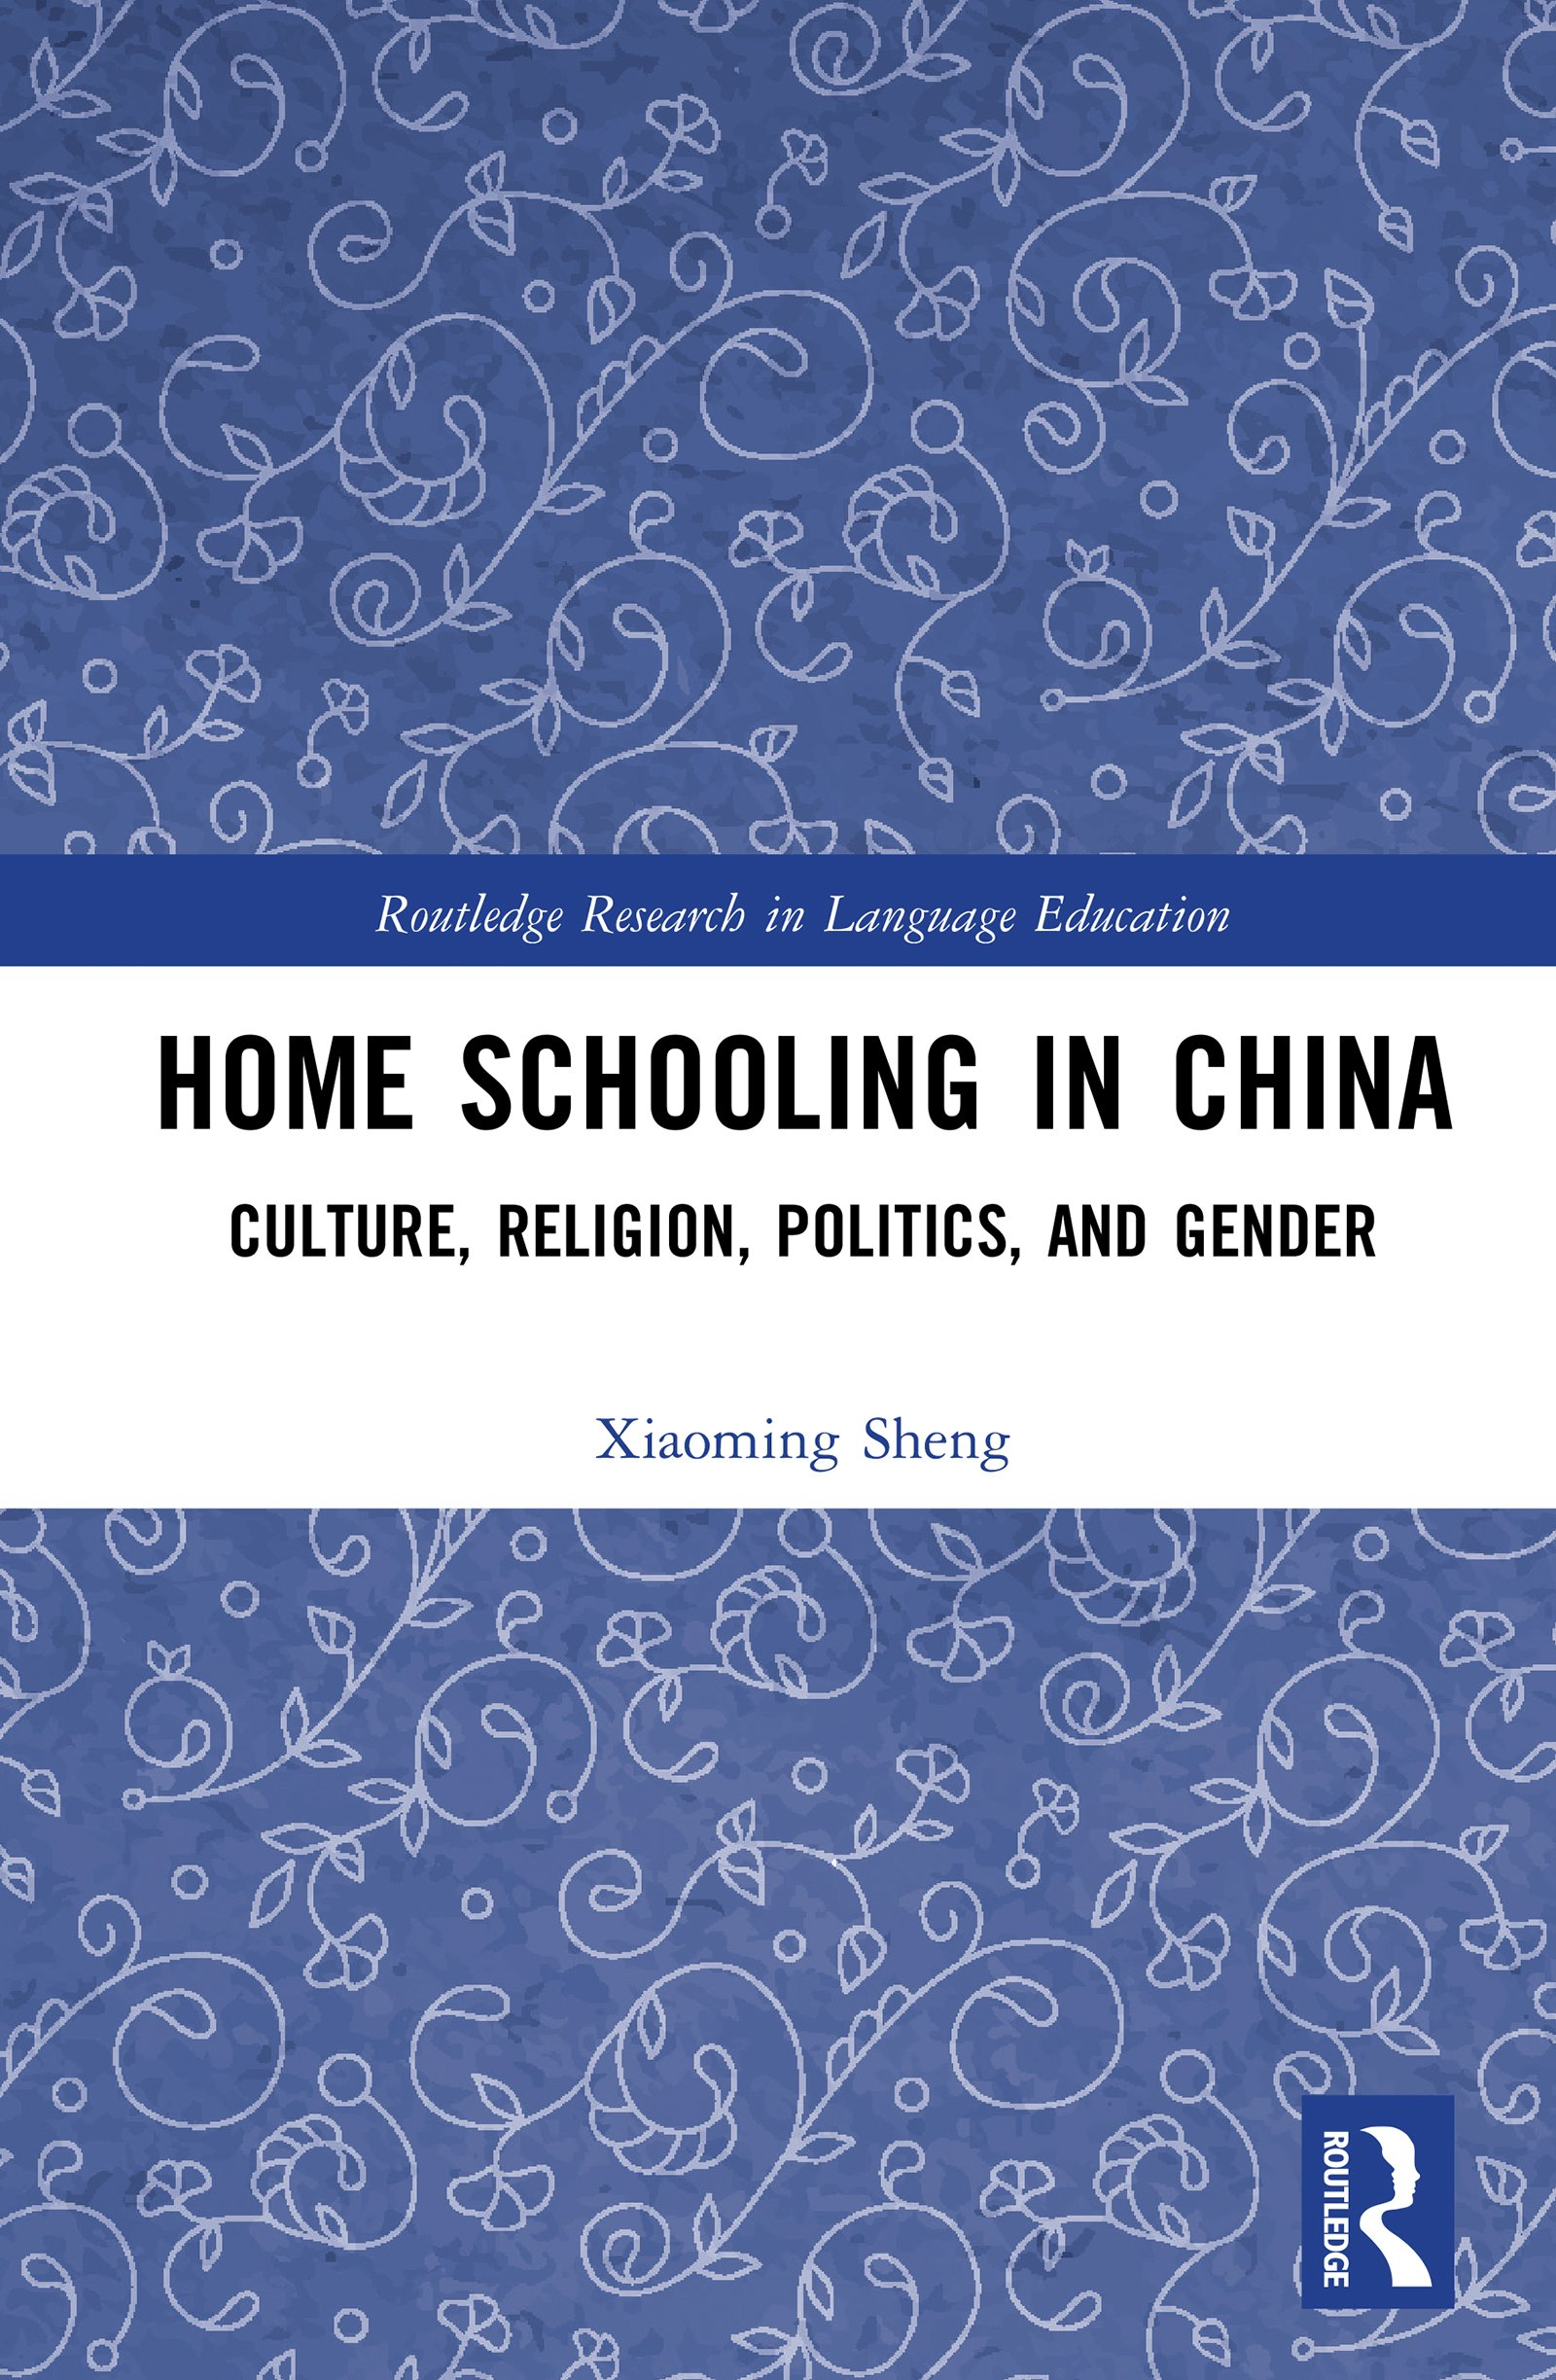 Home Schooling in China: Culture, Religion, Politics, and Gender book cover